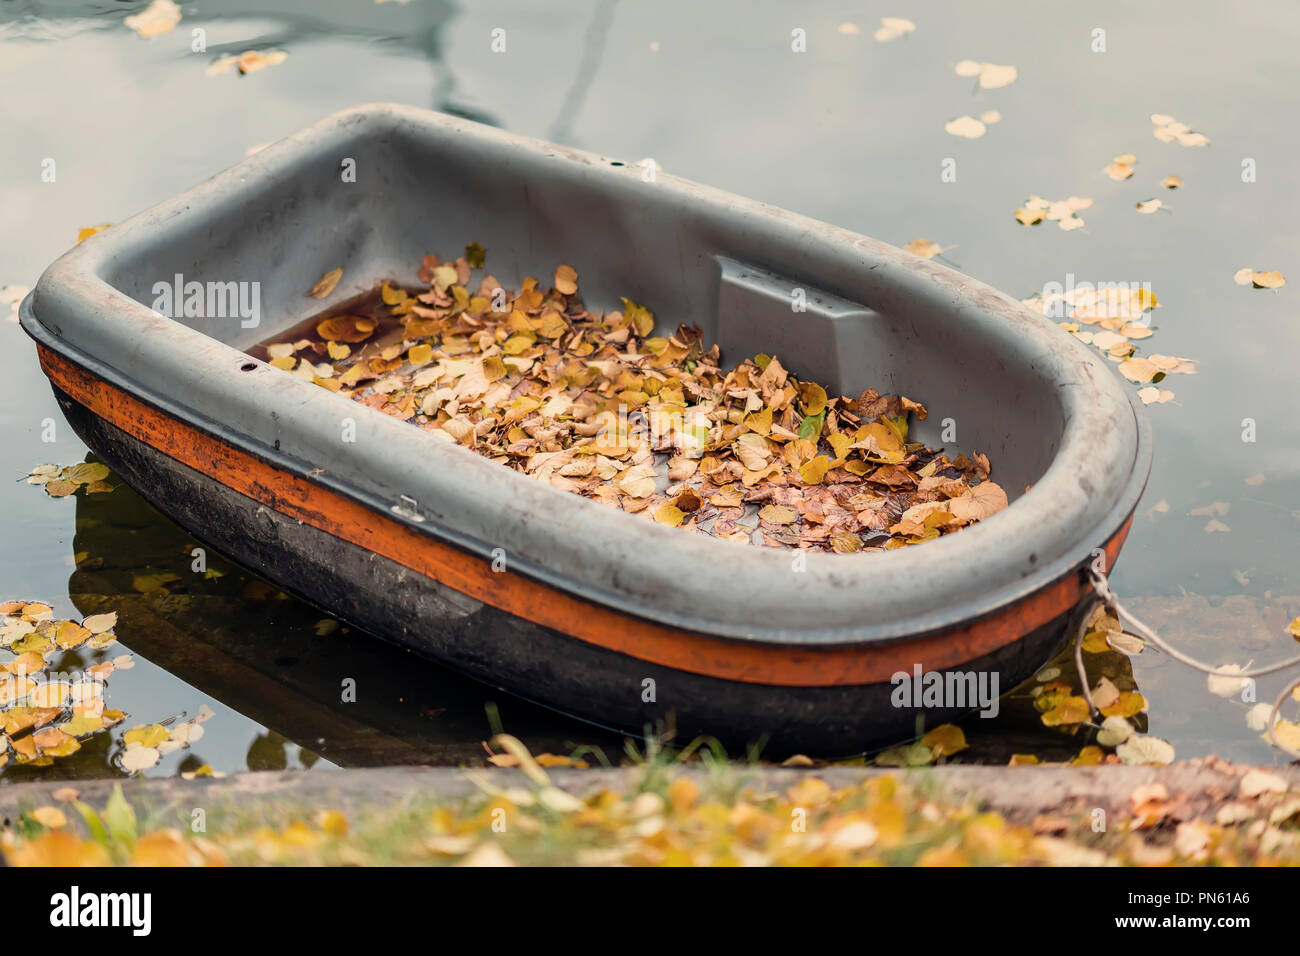 Moored dirty boat in the autumn pond. Autumn scene, fallen yellow leaves on the shore, real scene, romantic seasonal mood, concept of nostalgia - Stock Image